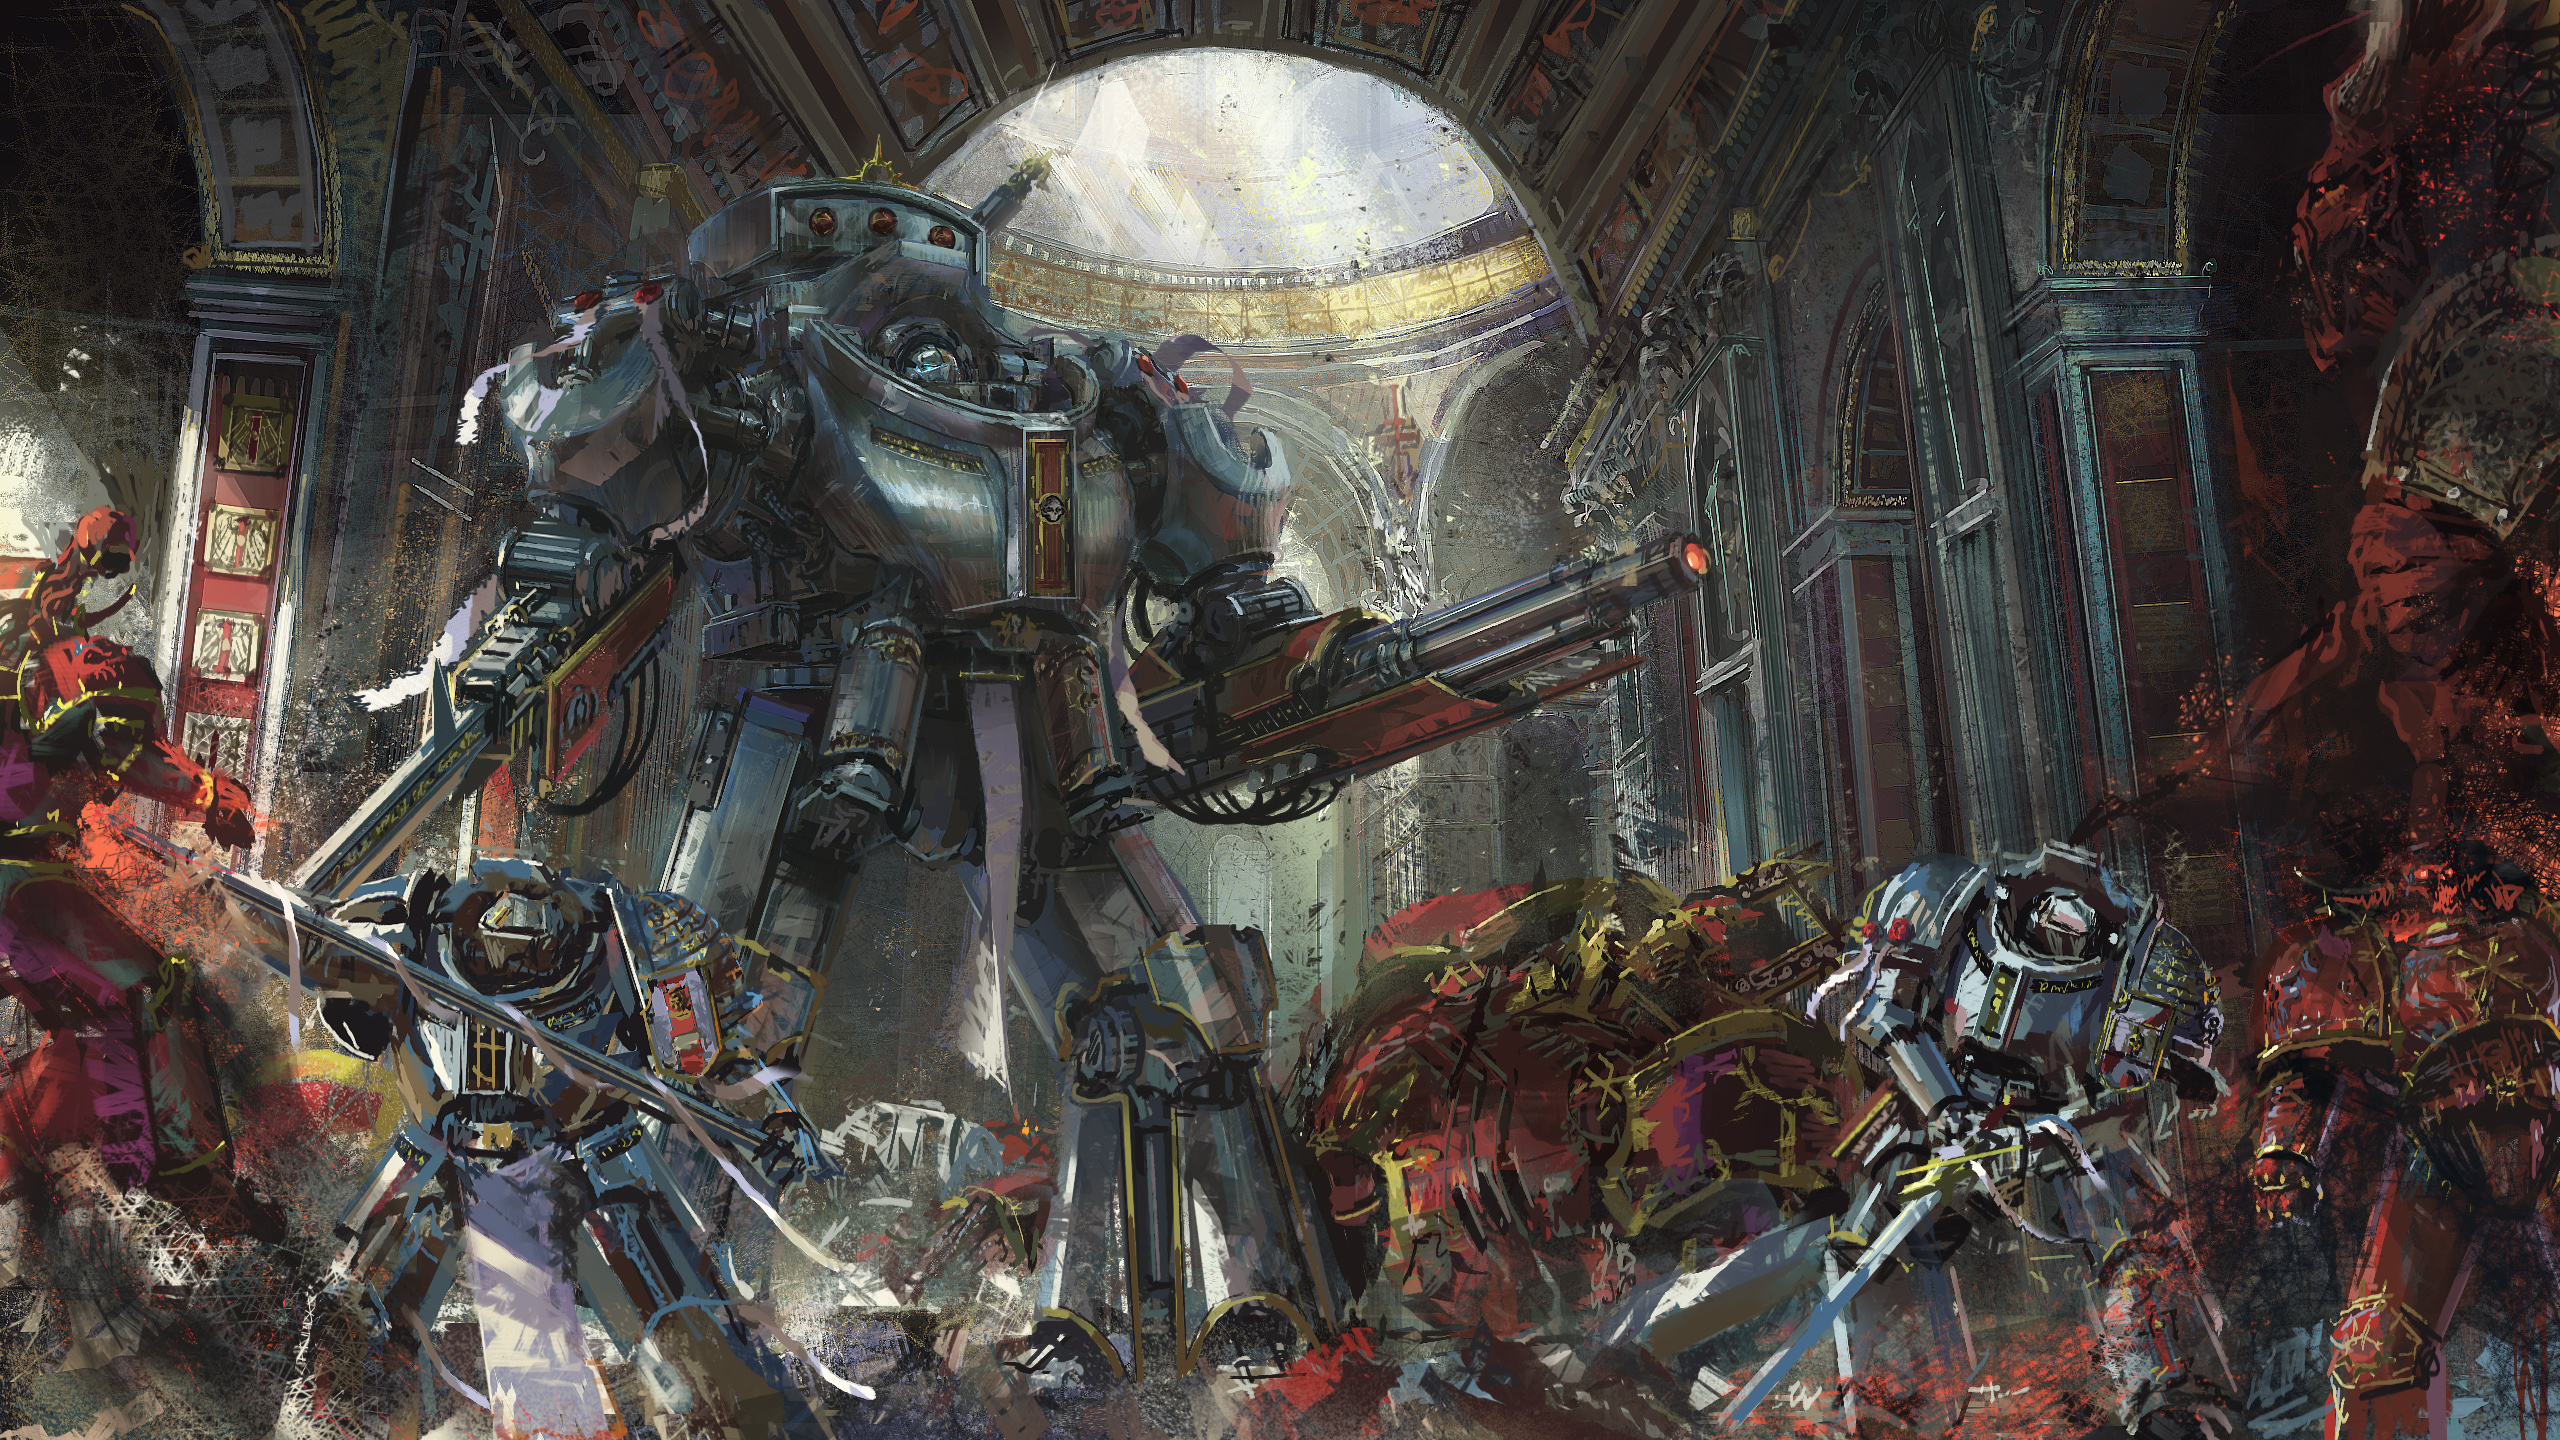 Warhammer Hd Wallpaper Posted By Zoey Thompson